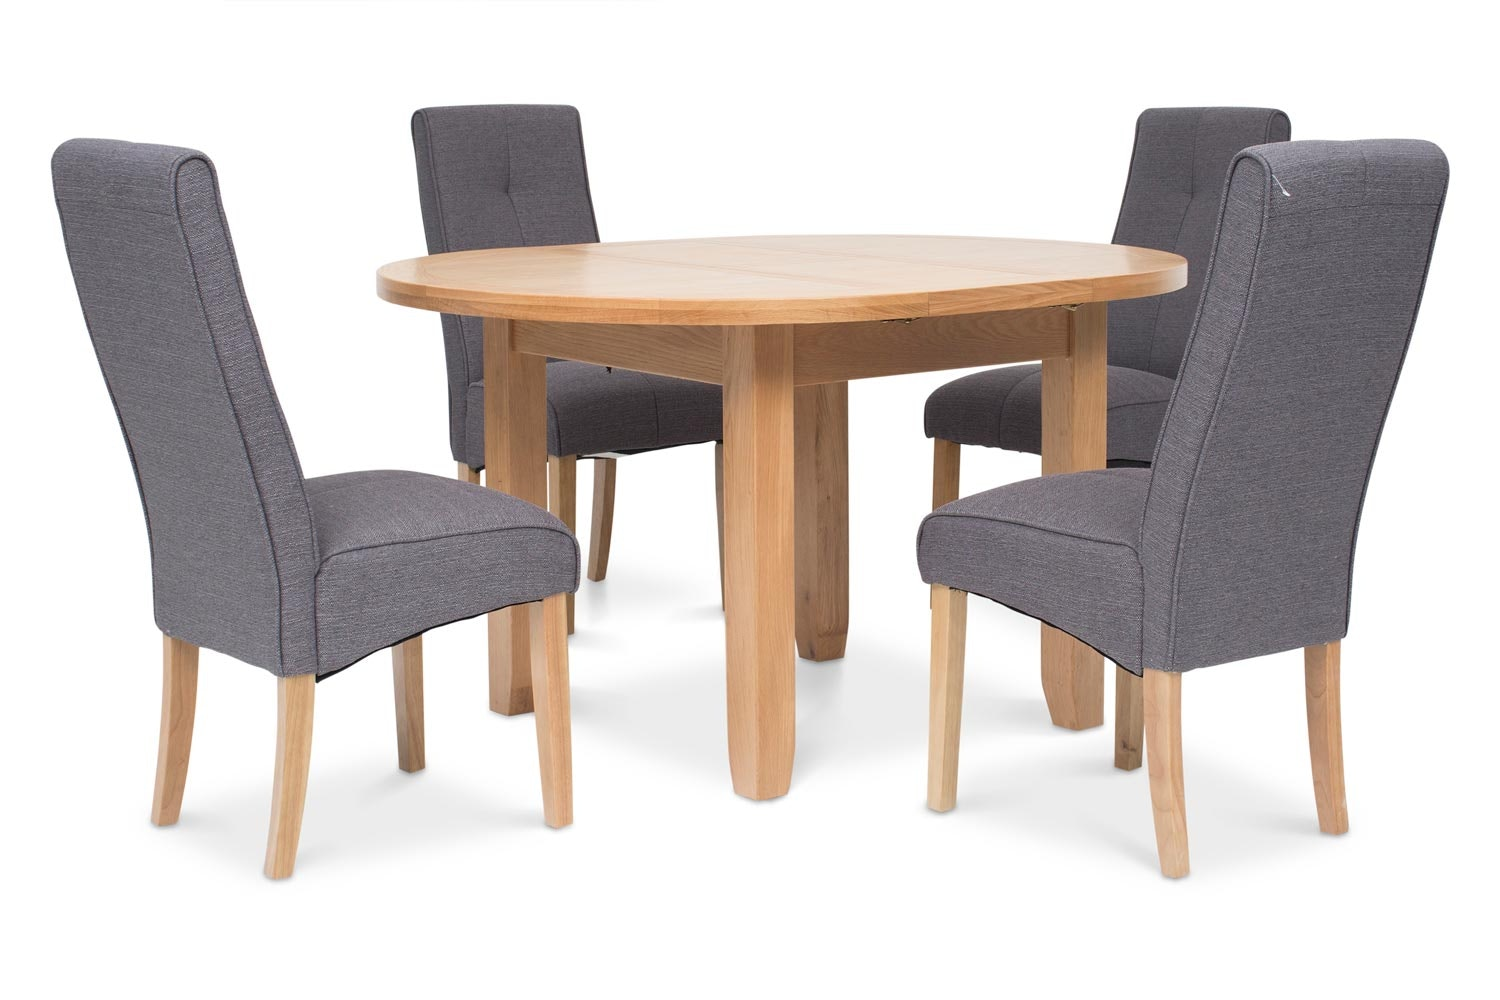 Hillary 5 Piece Dining Set | Mabel Chair Dark Grey